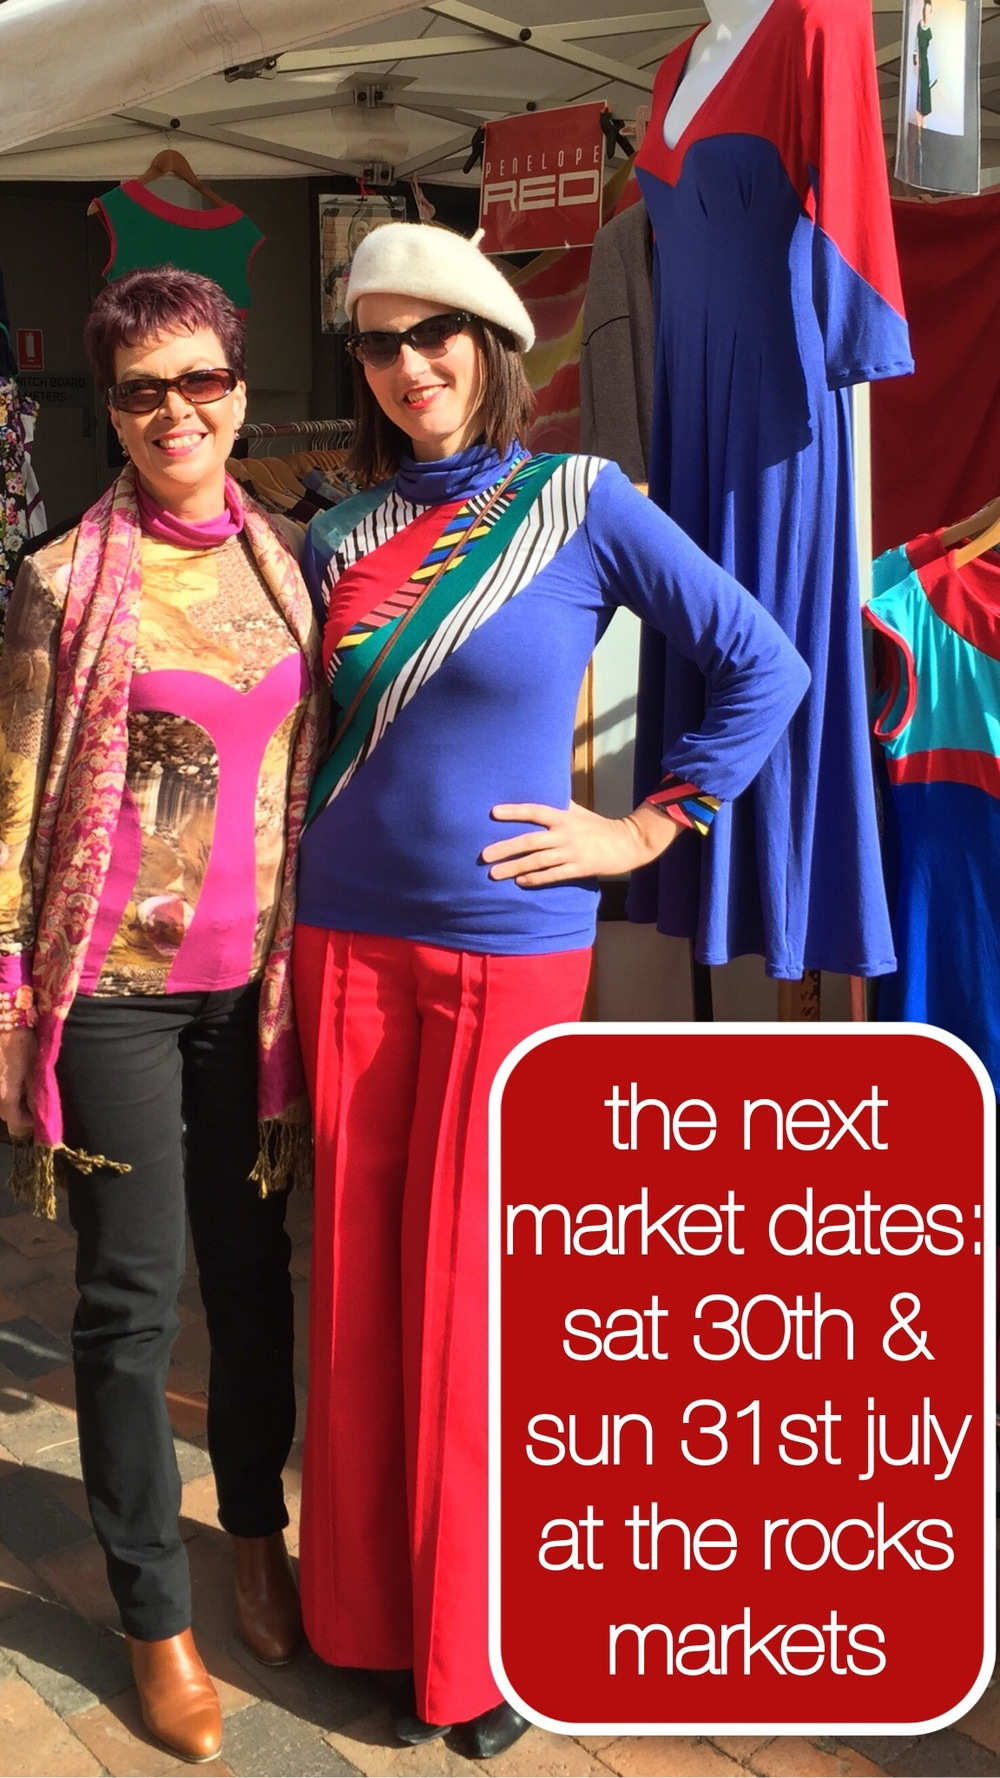 Leanne wears a one of a kind Penelope Red skivvy, and I wear the new Jigsaw Skivvy in Blue.